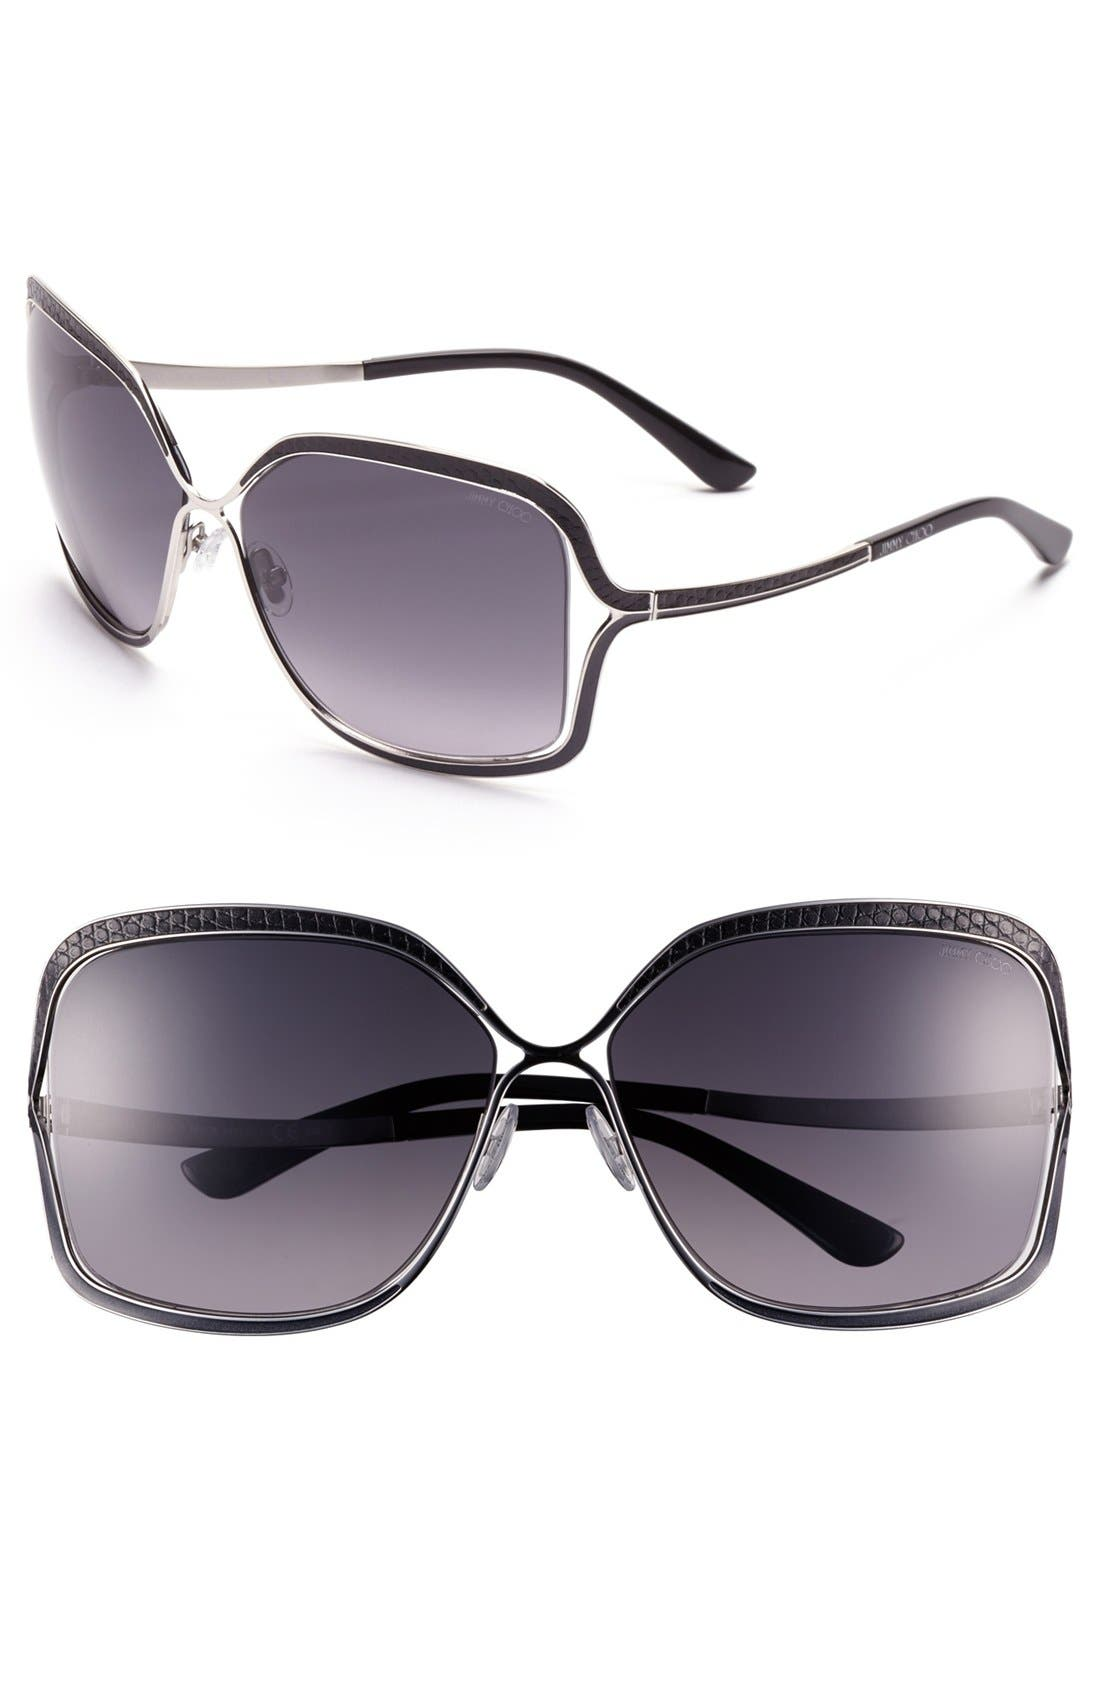 Main Image - Jimmy Choo 63mm Oversized Sunglasses